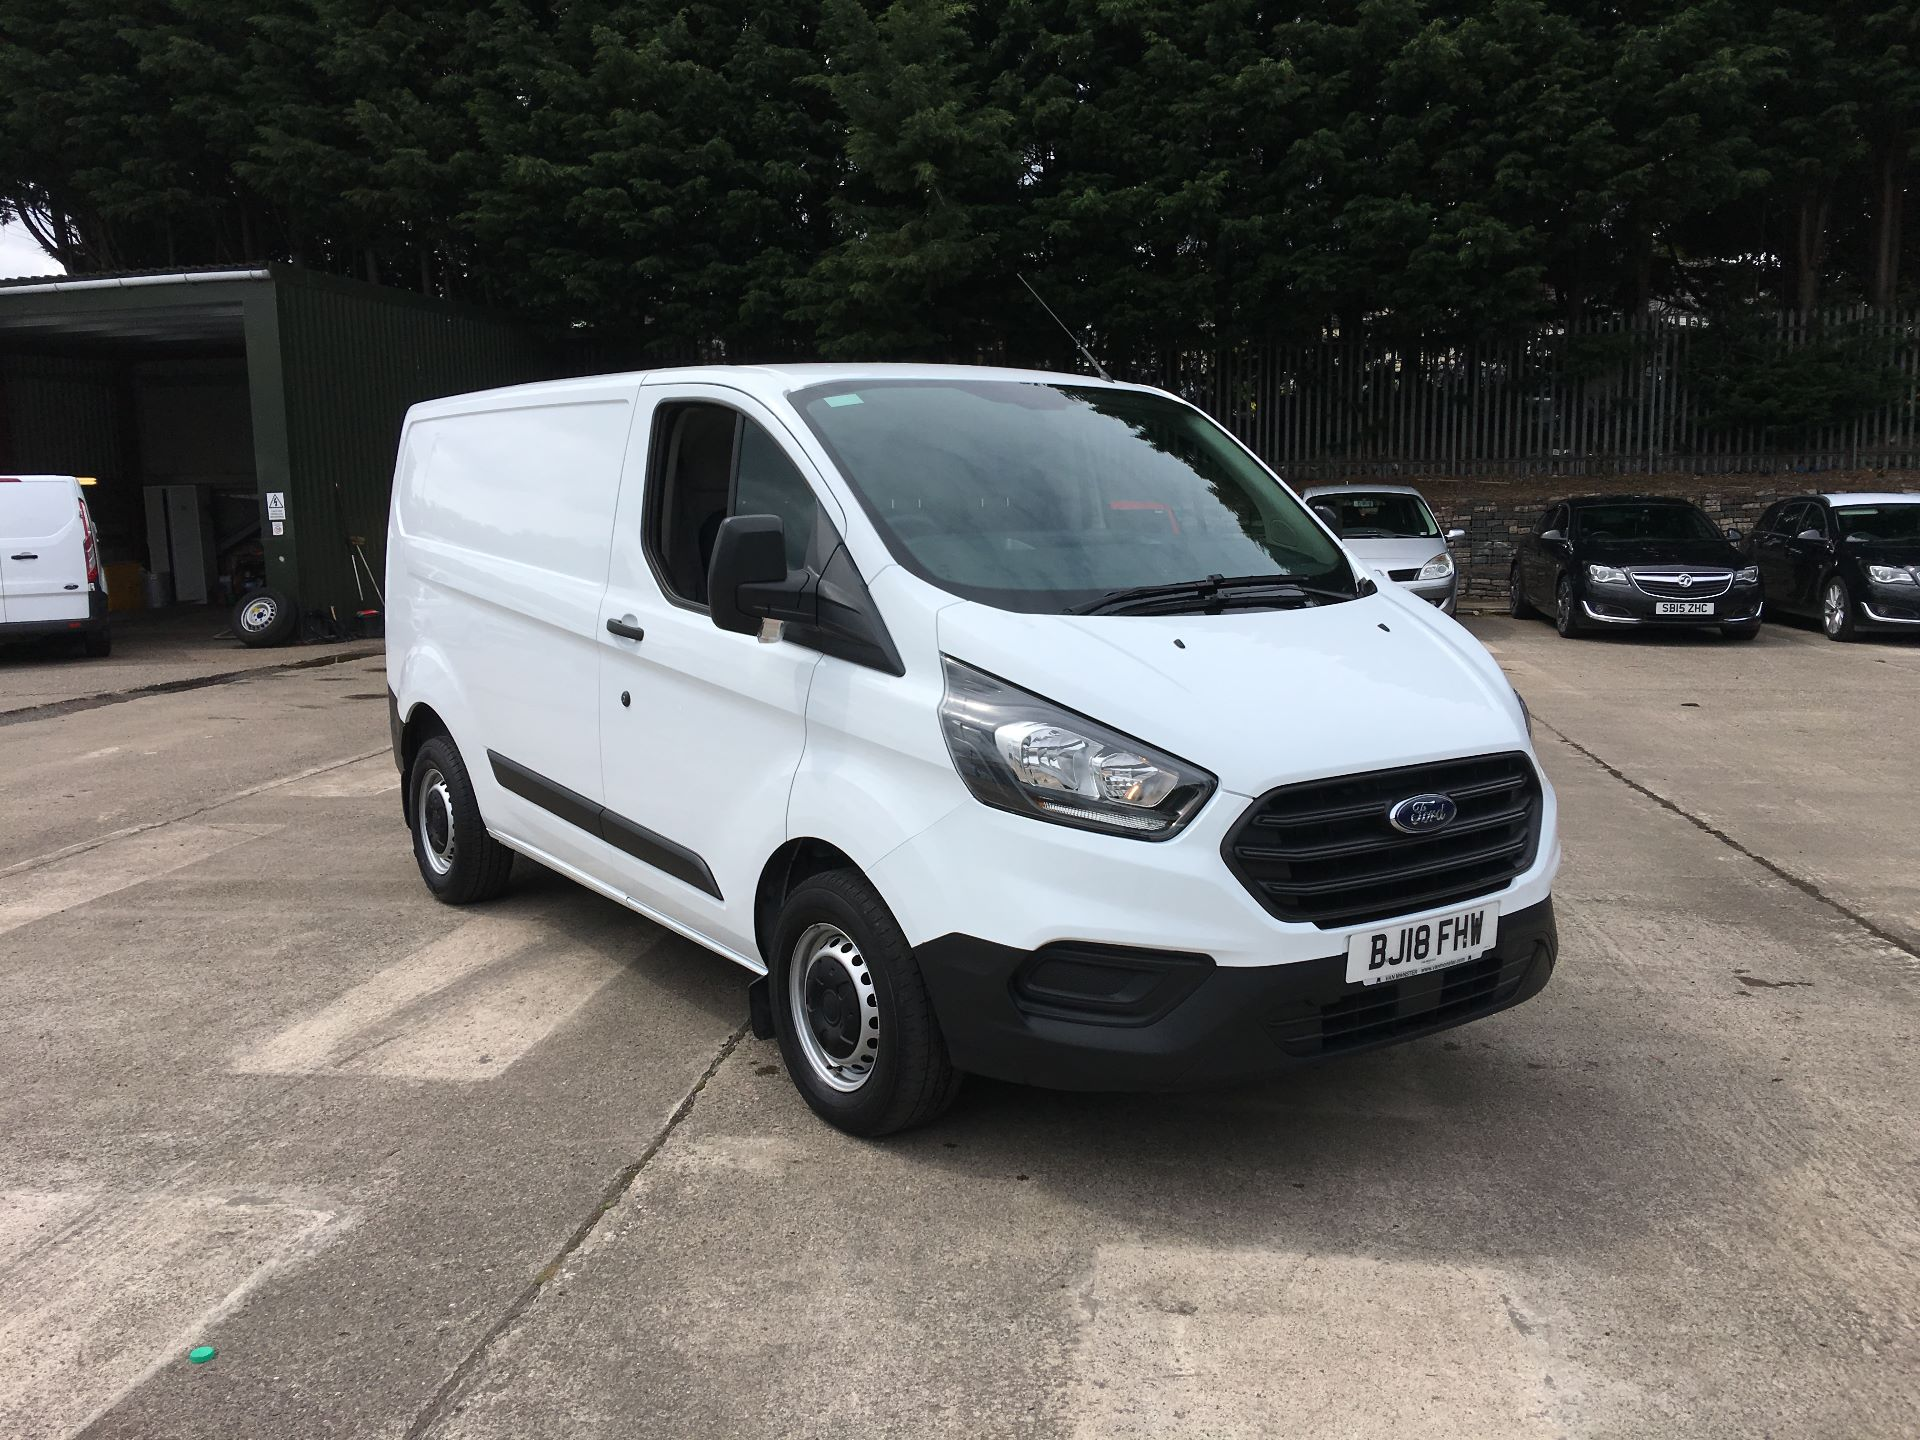 2018 Ford Transit Custom 300 L1 DIESEL FWD 2.0 TDCI 105PS LOW ROOF EURO 6 (BJ18FHW)